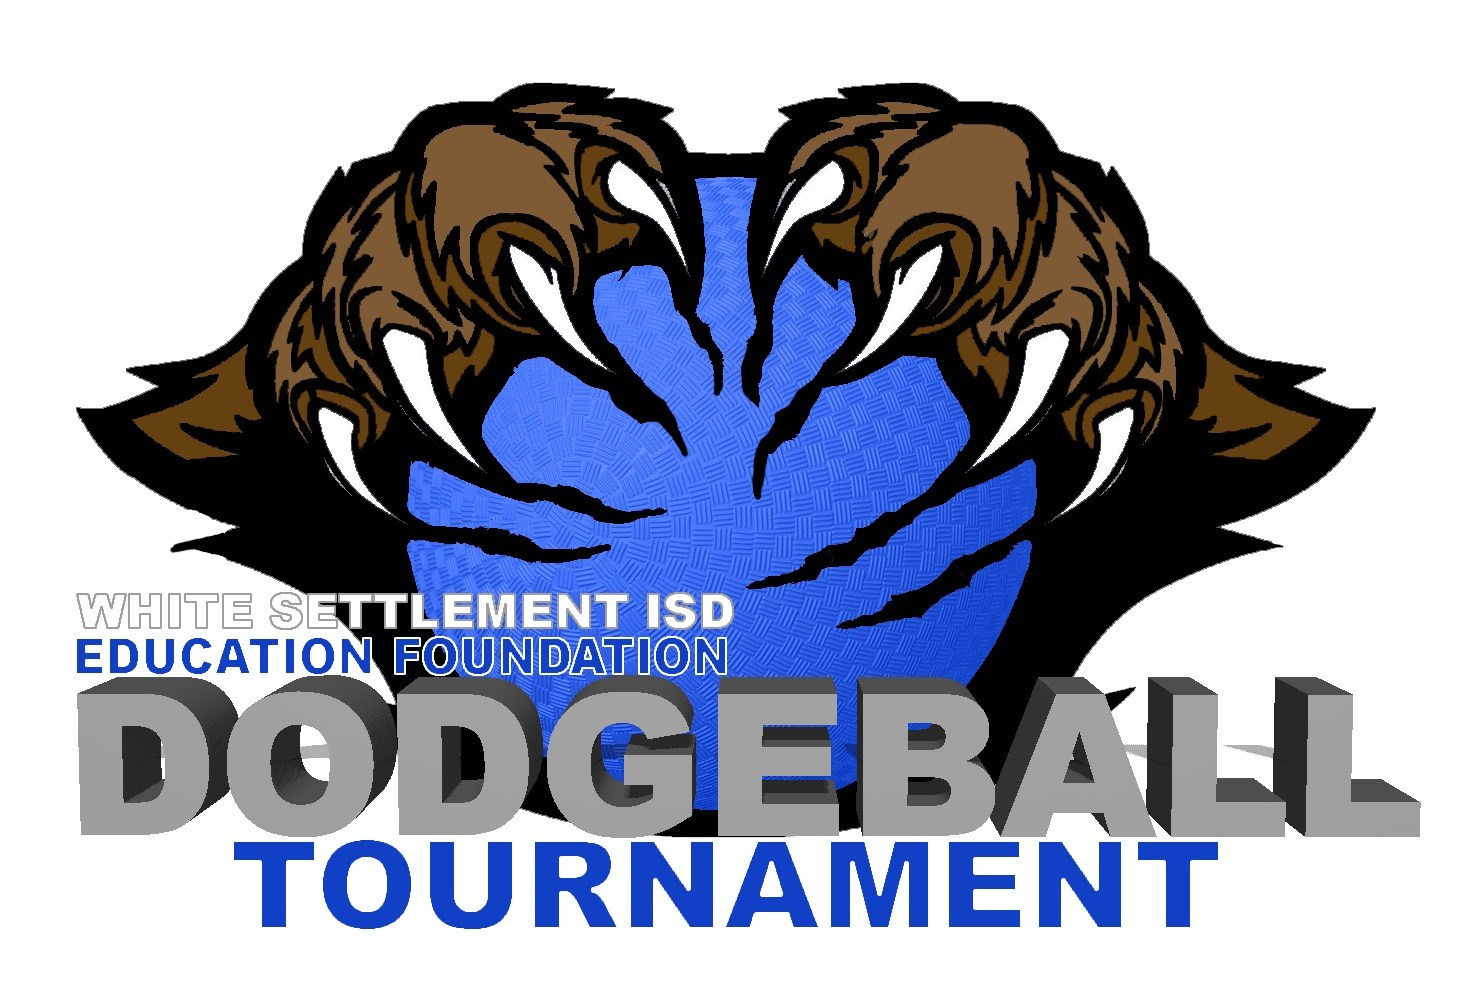 Dodgeball tournament flyer